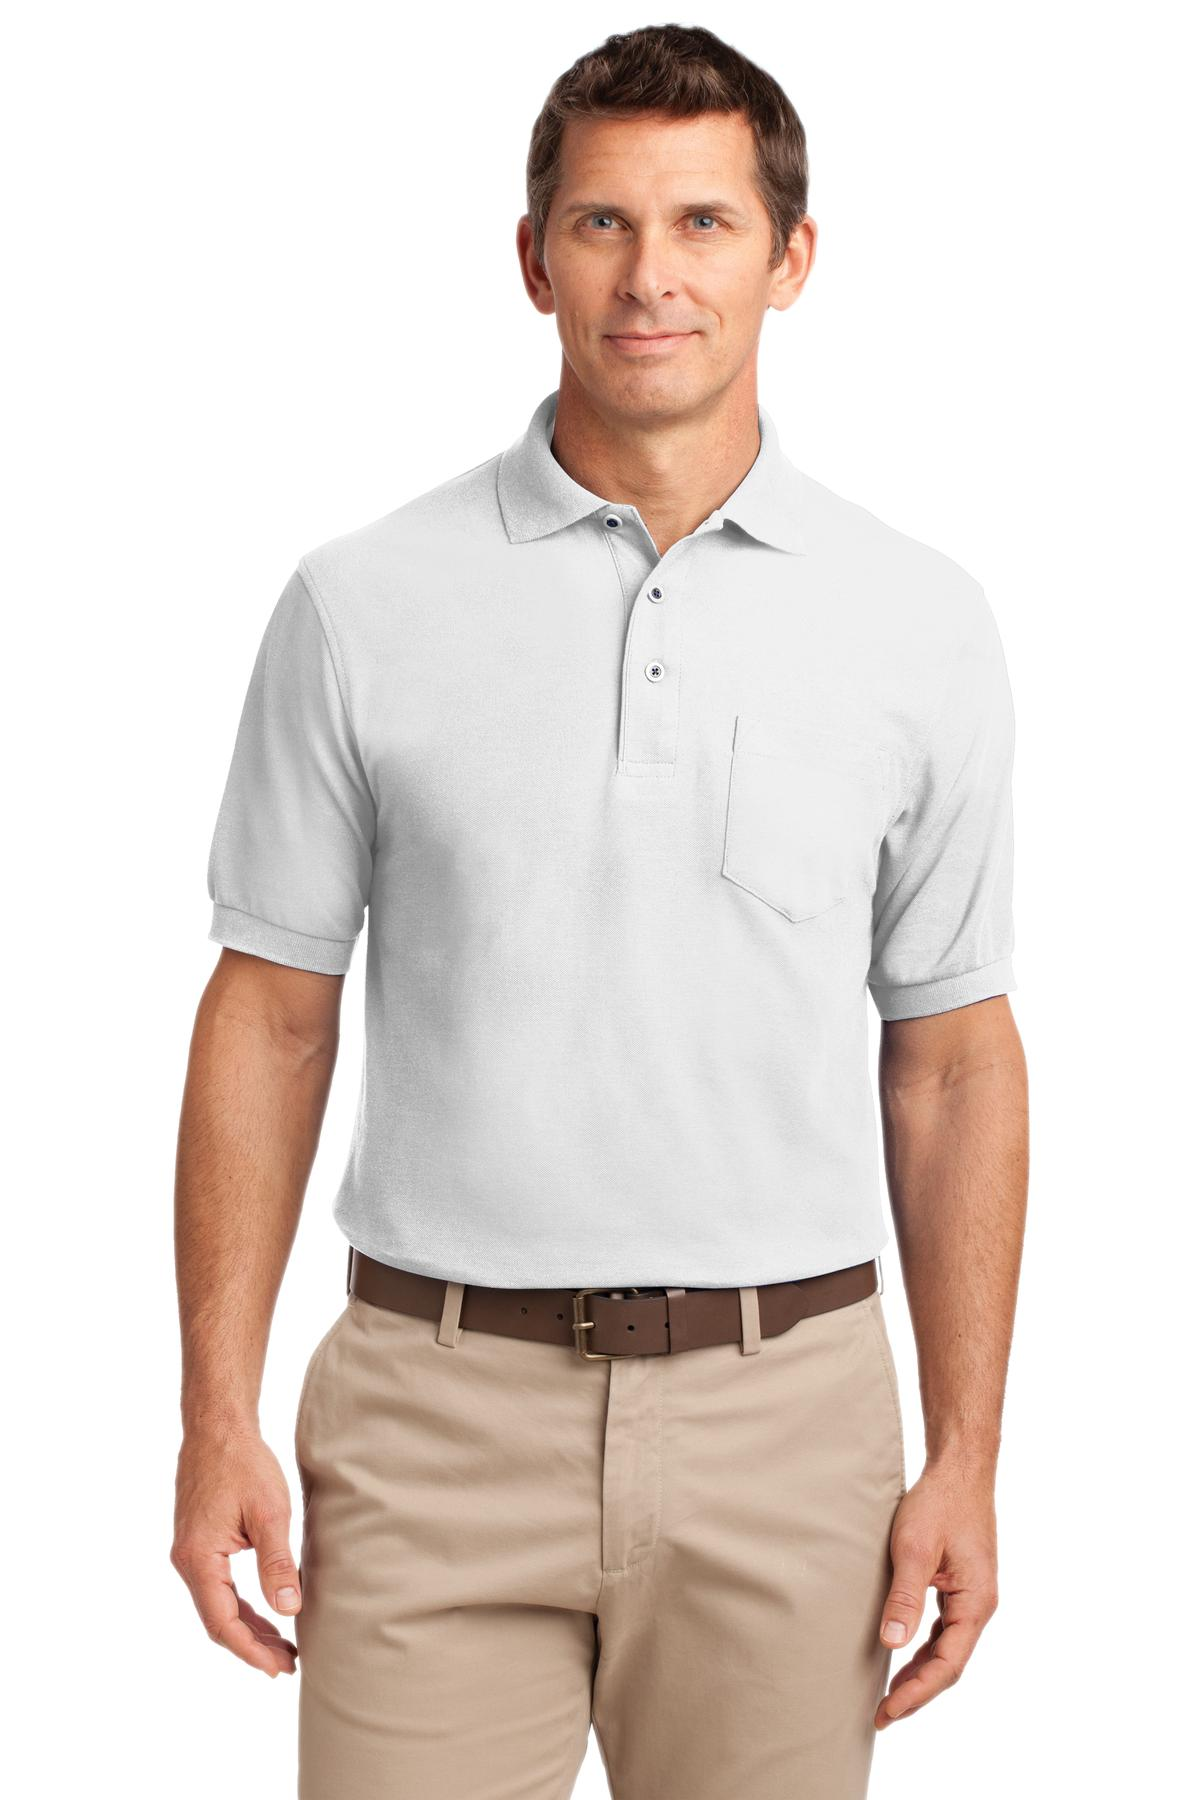 White Port Authority Stain-Release Polo.